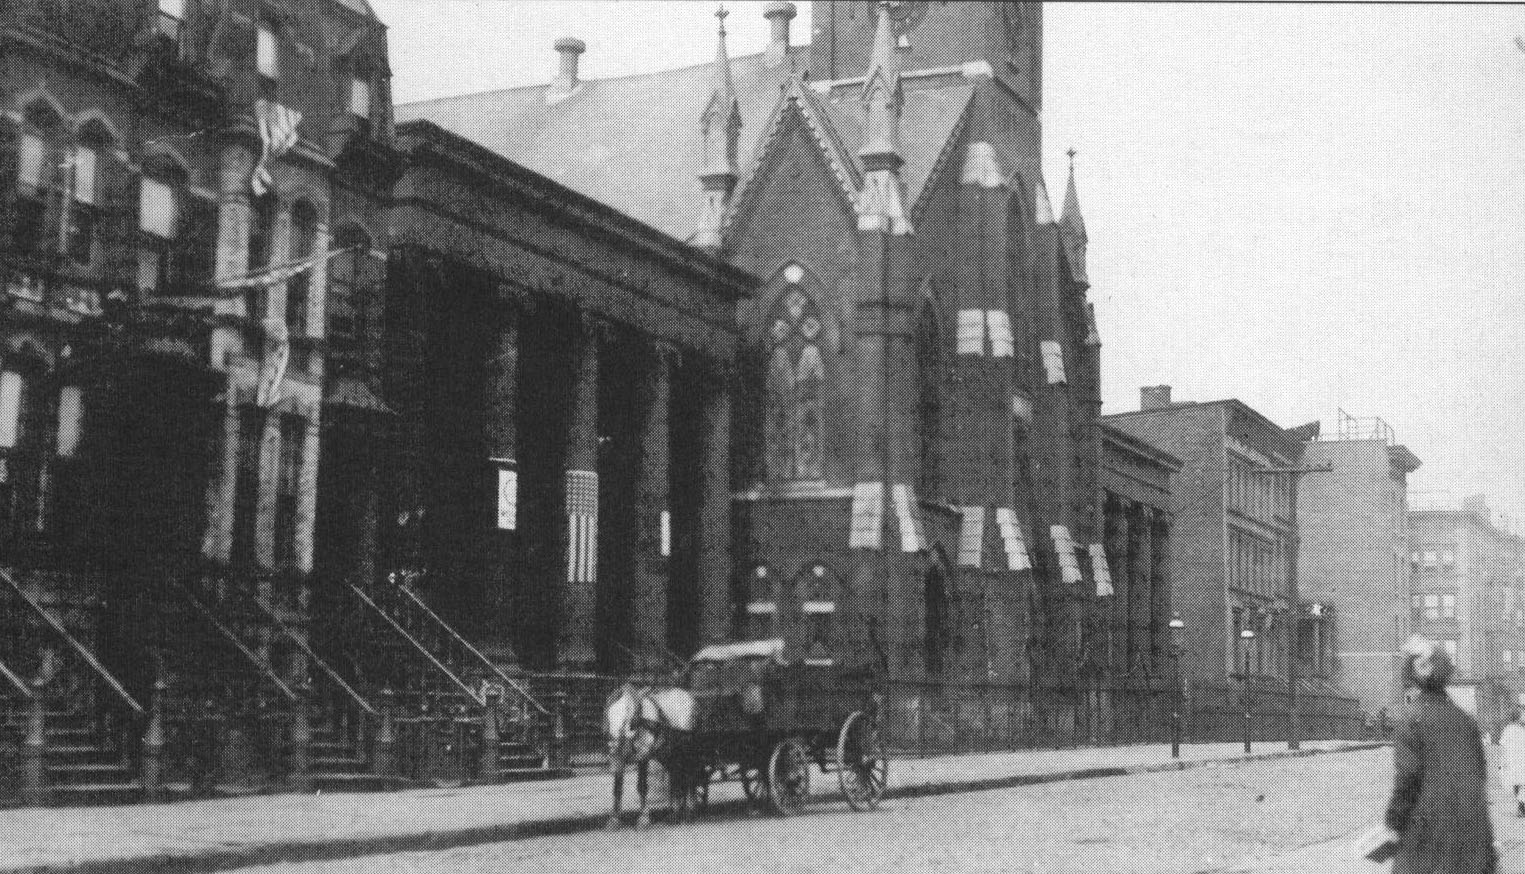 Early 20th century photograph of Wayne Street showing (left to right) the Barrow Mansion, St. Matthew's Lutheran Church, and the Van Vorst (Benjamin Edge) Mansion. Courtesy: Jersey City Free Public Library